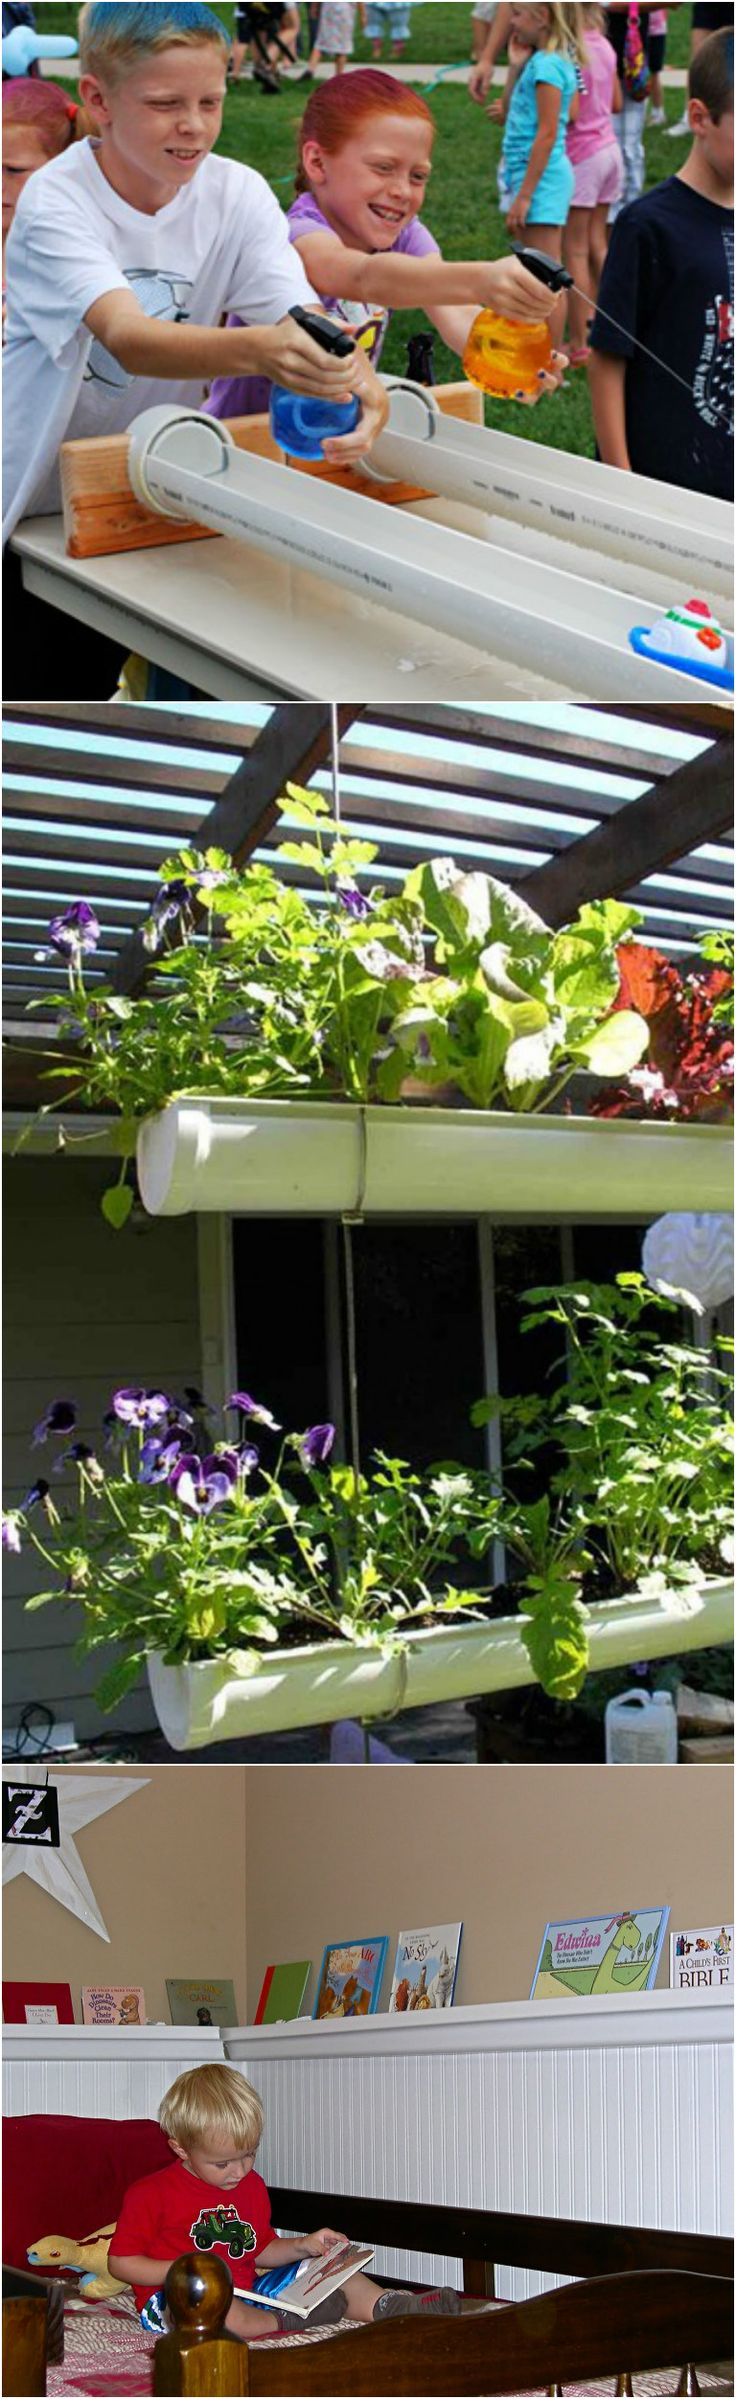 In addition to be part of your roof and water drainage, rain gutters are good friends for home and garden. It is exciting to do DIY projects using them. You can easily repurpose rain gutters into many fun and useful stuff. Old gutters, usually made of metal or plastic, end …